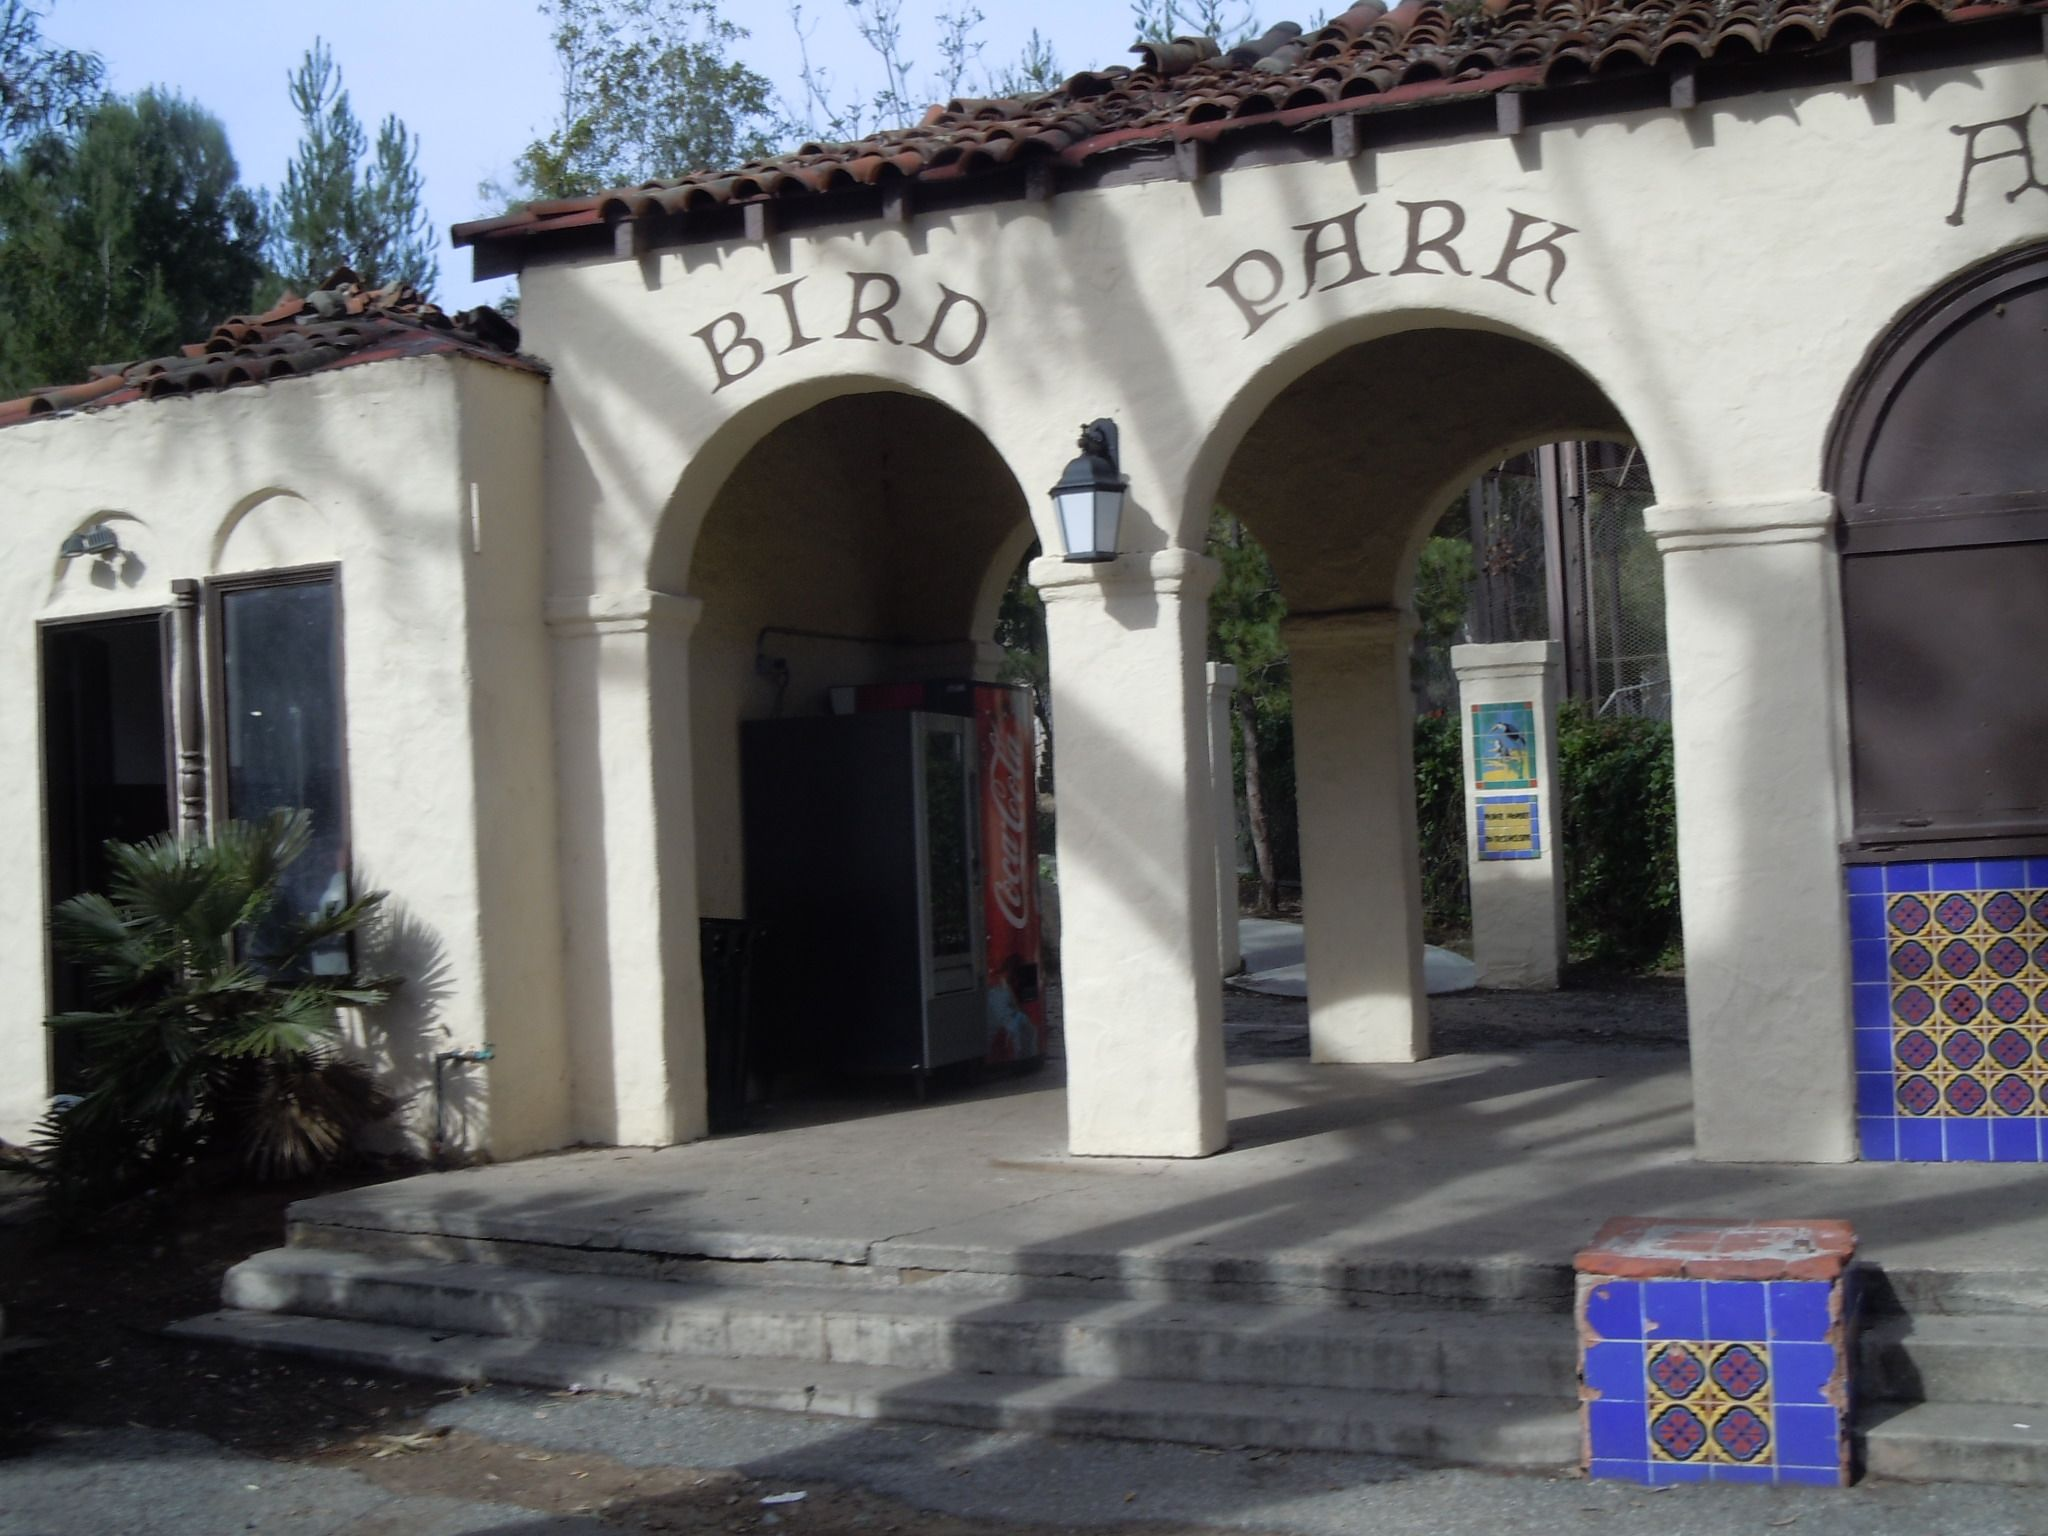 Catalina island bird park now used for children